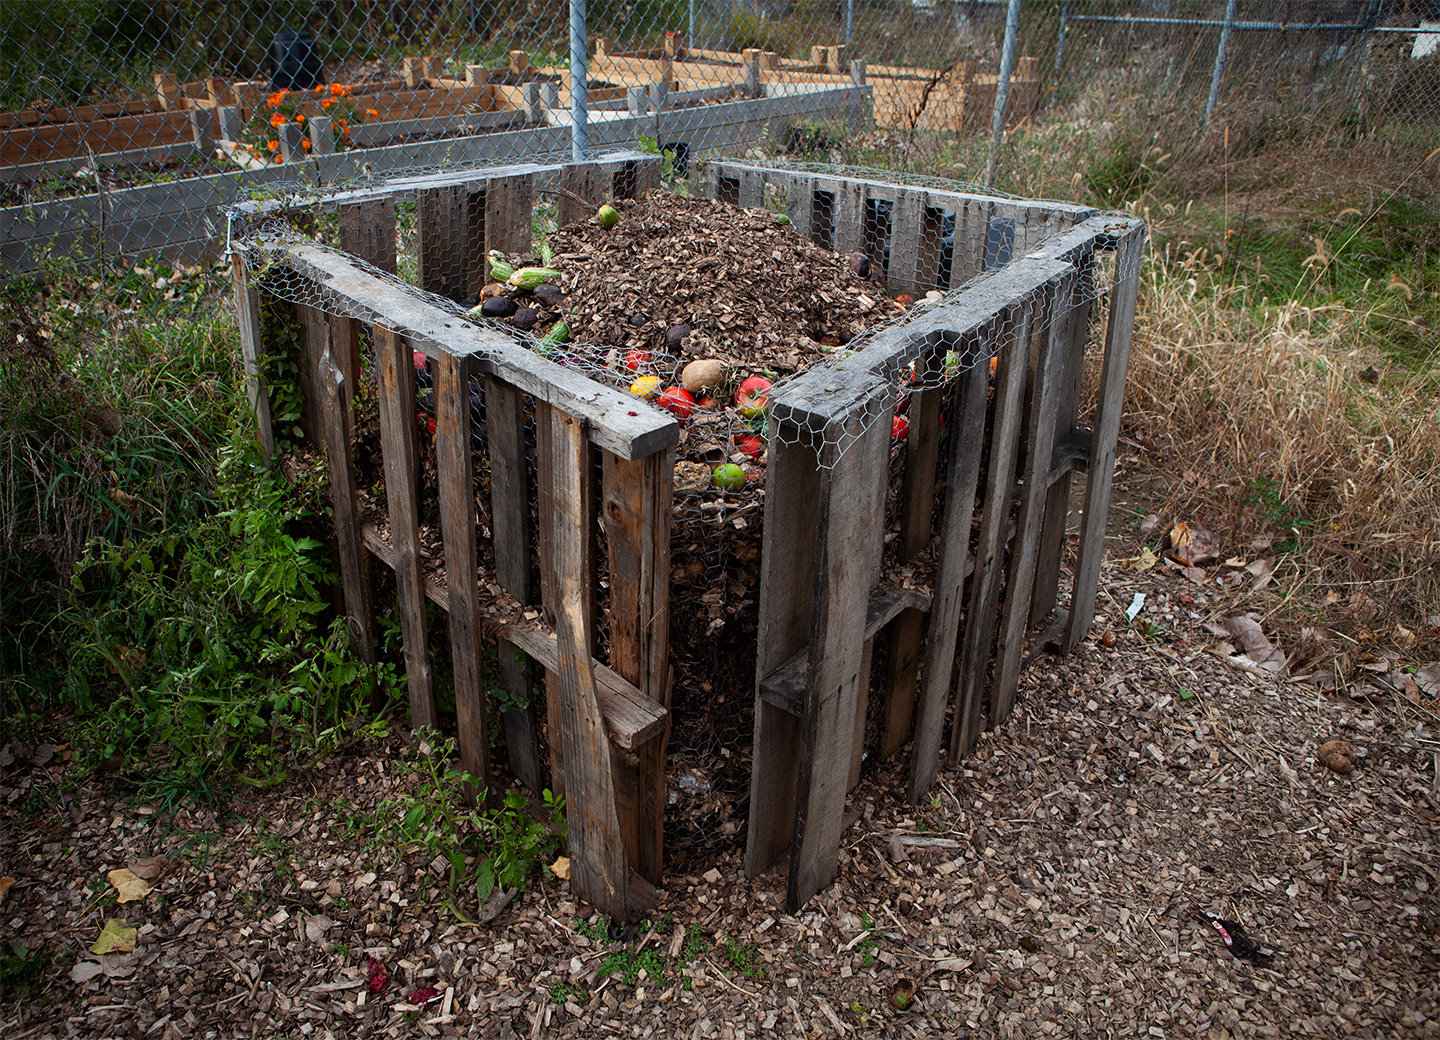 Compost bin filled with organic material